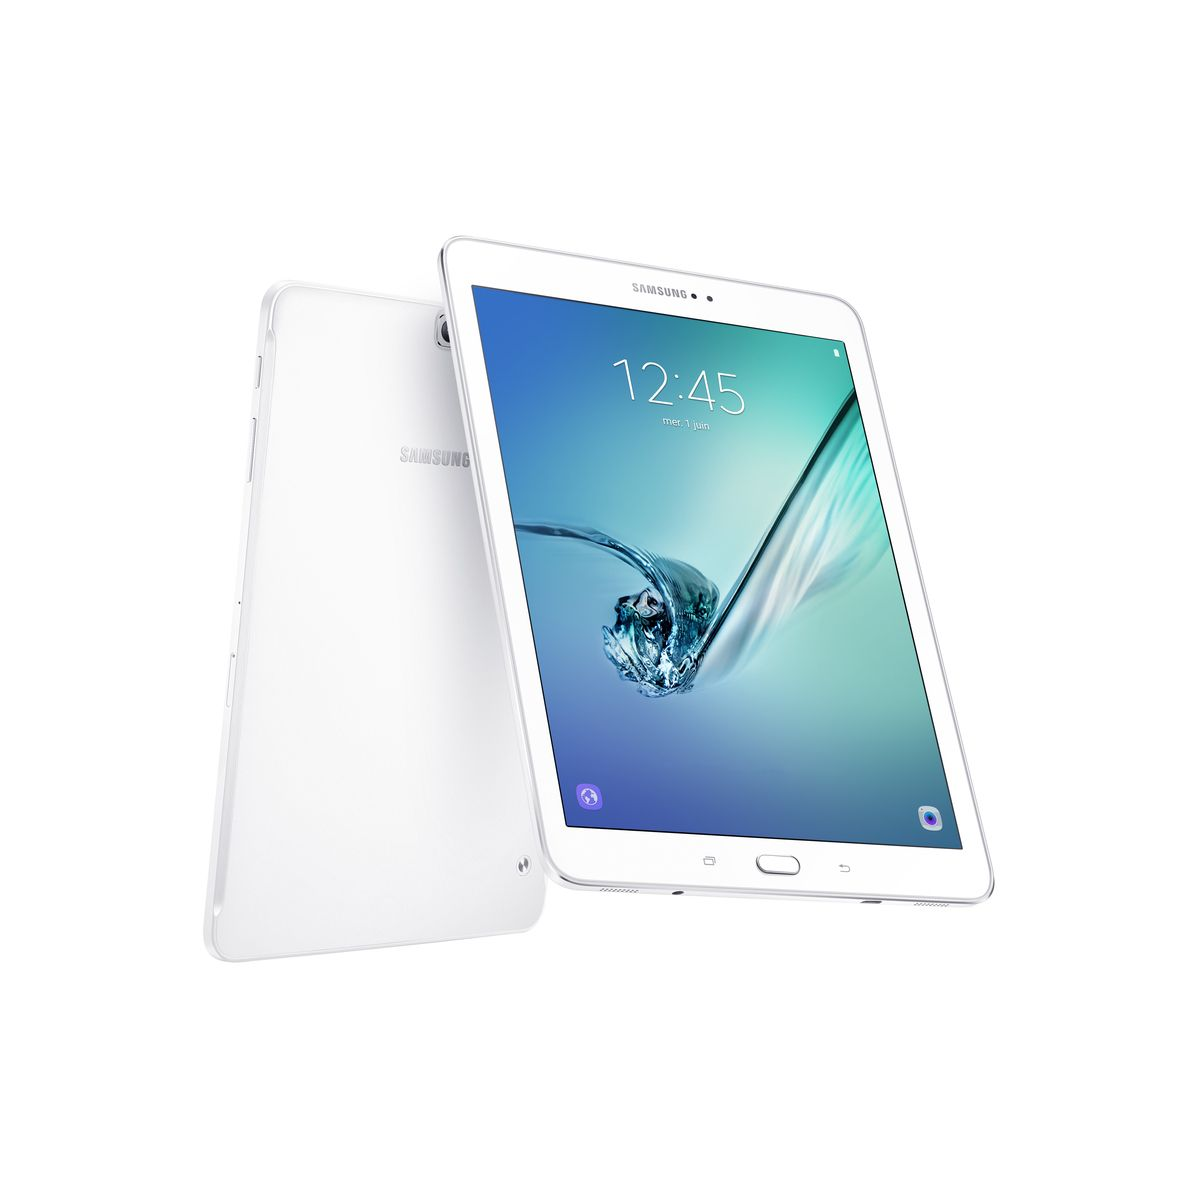 SAMSUNG Tablette tactile Galaxy Tab S2 9.7 pouces Blanc 32 Go